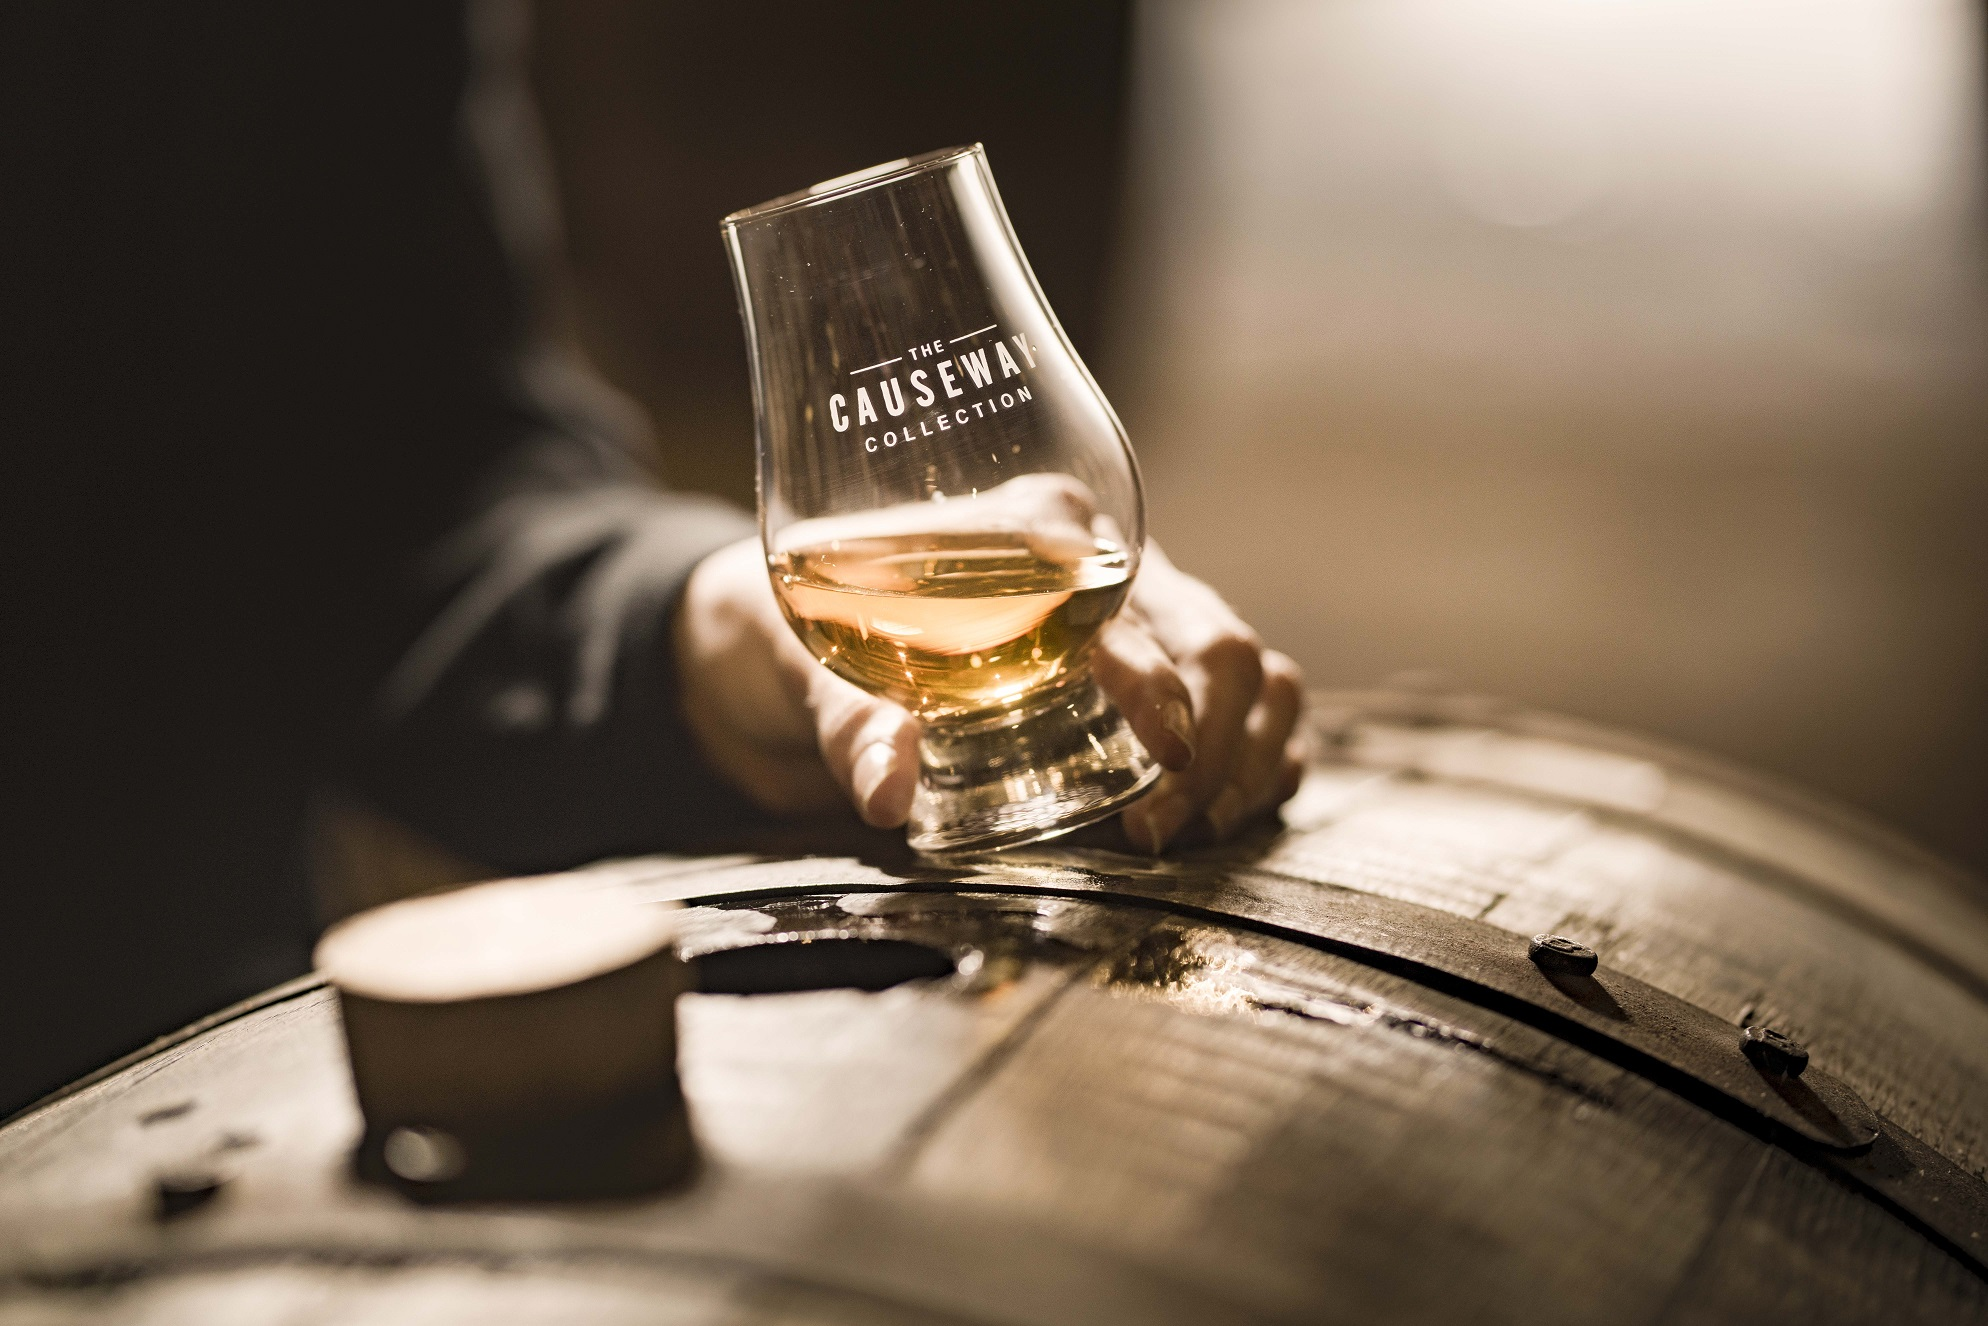 Bushmills unveils latest stars of Causeway Collection